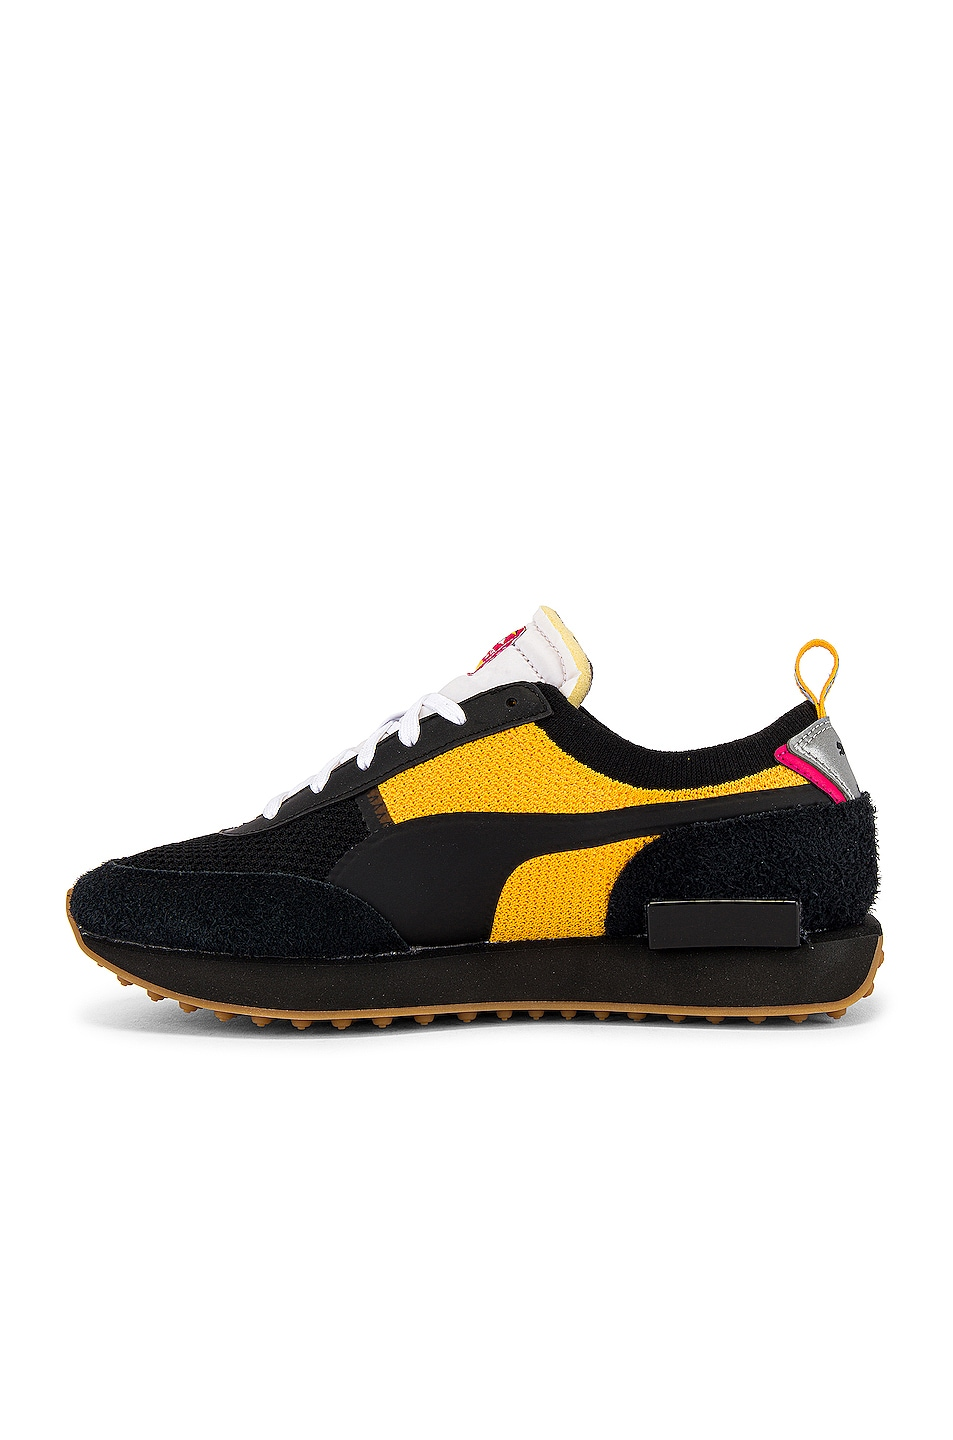 Image 5 of Puma Select x Helly Hansen Rider in